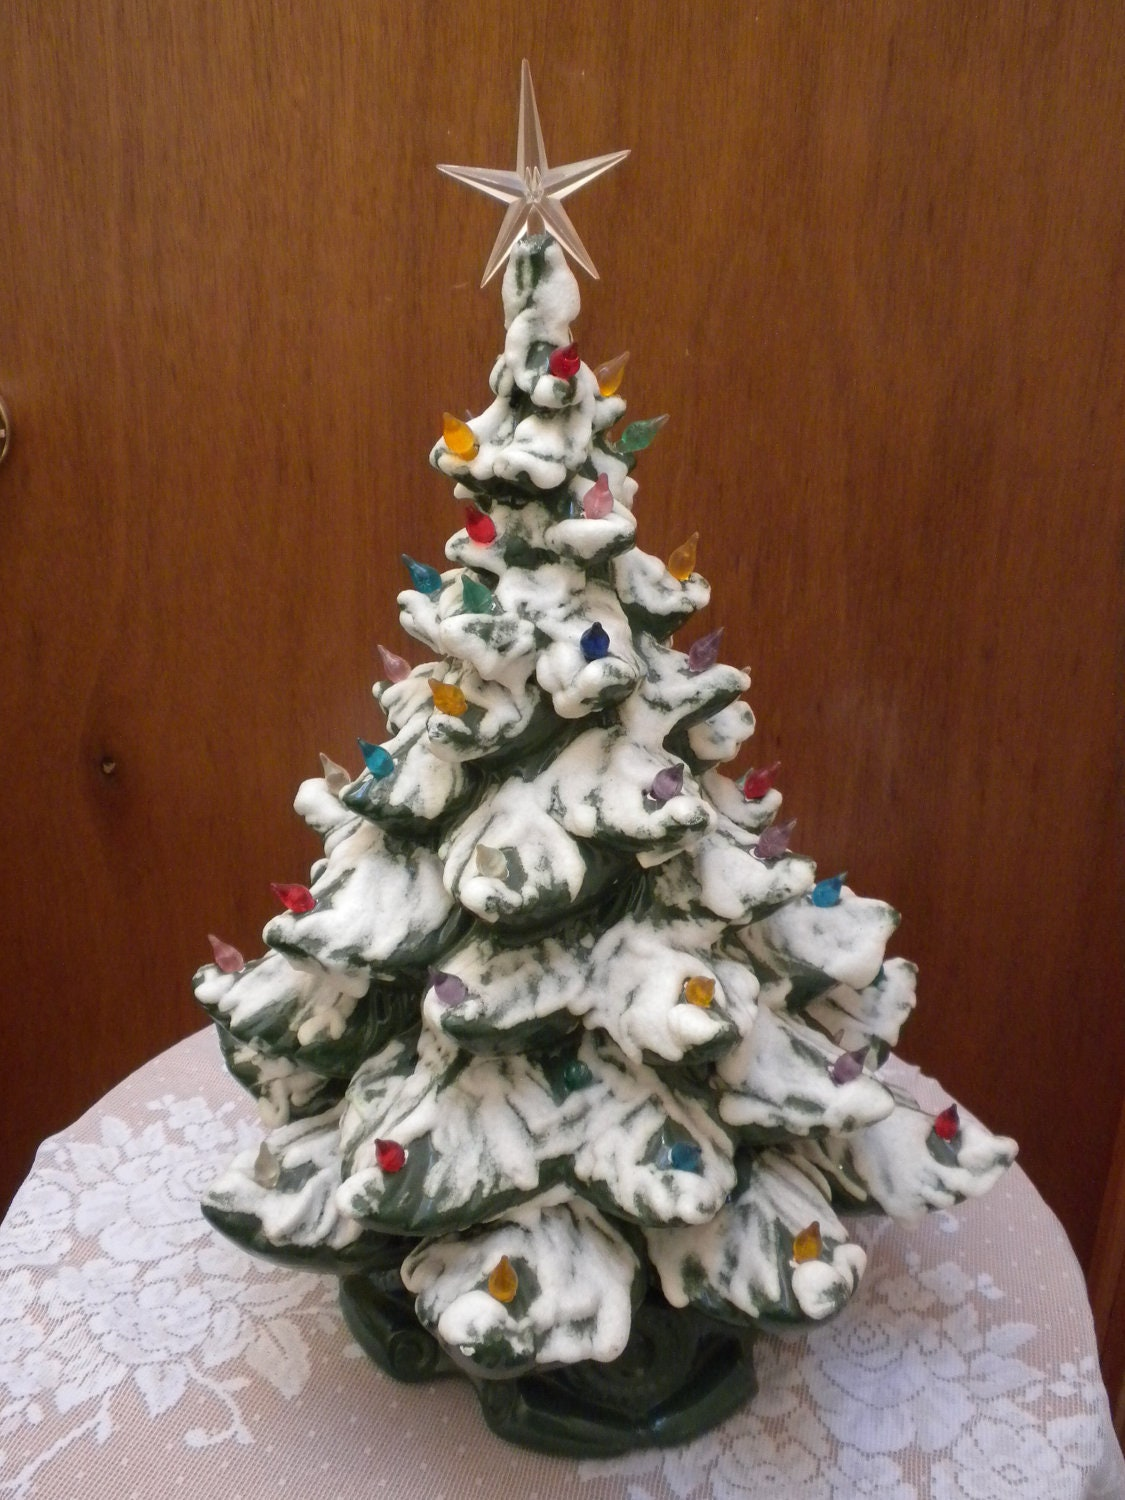 Christmas Tree 20 Inches Vintage Ceramic Lights Up By Brixiana